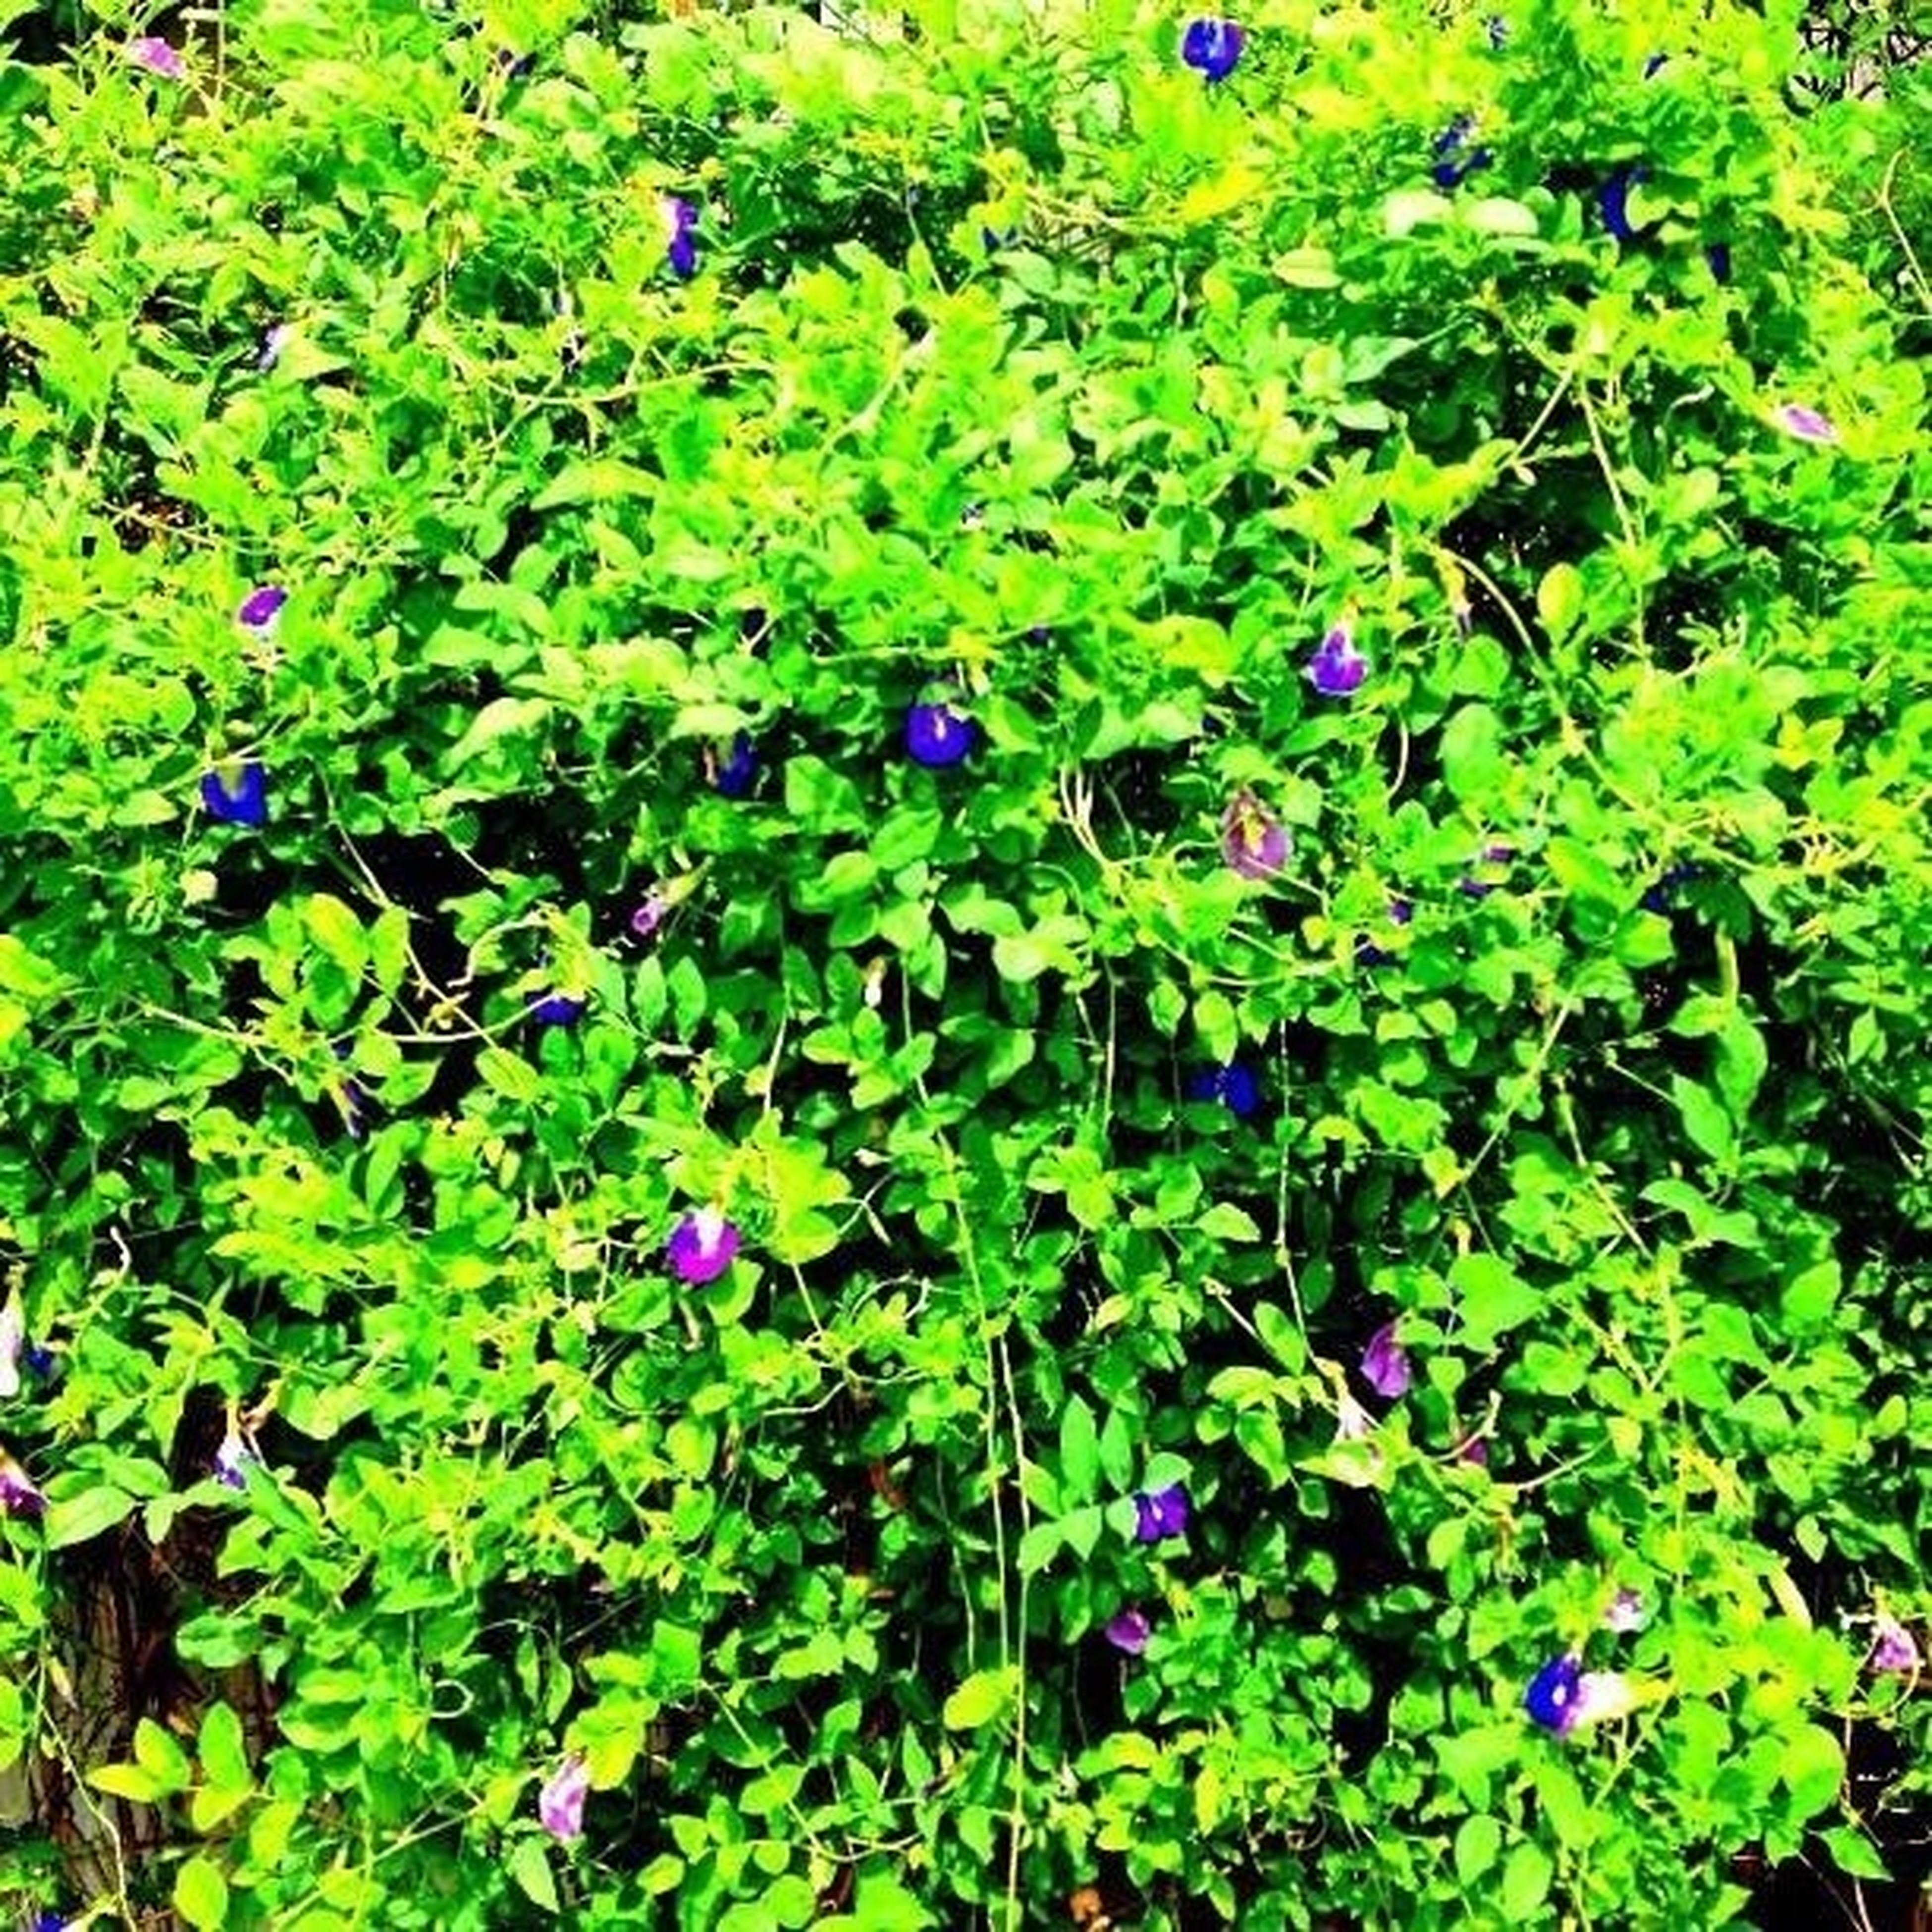 flower, growth, freshness, purple, beauty in nature, leaf, plant, fragility, green color, nature, petal, blooming, in bloom, high angle view, park - man made space, blue, flower head, day, blossom, sunlight